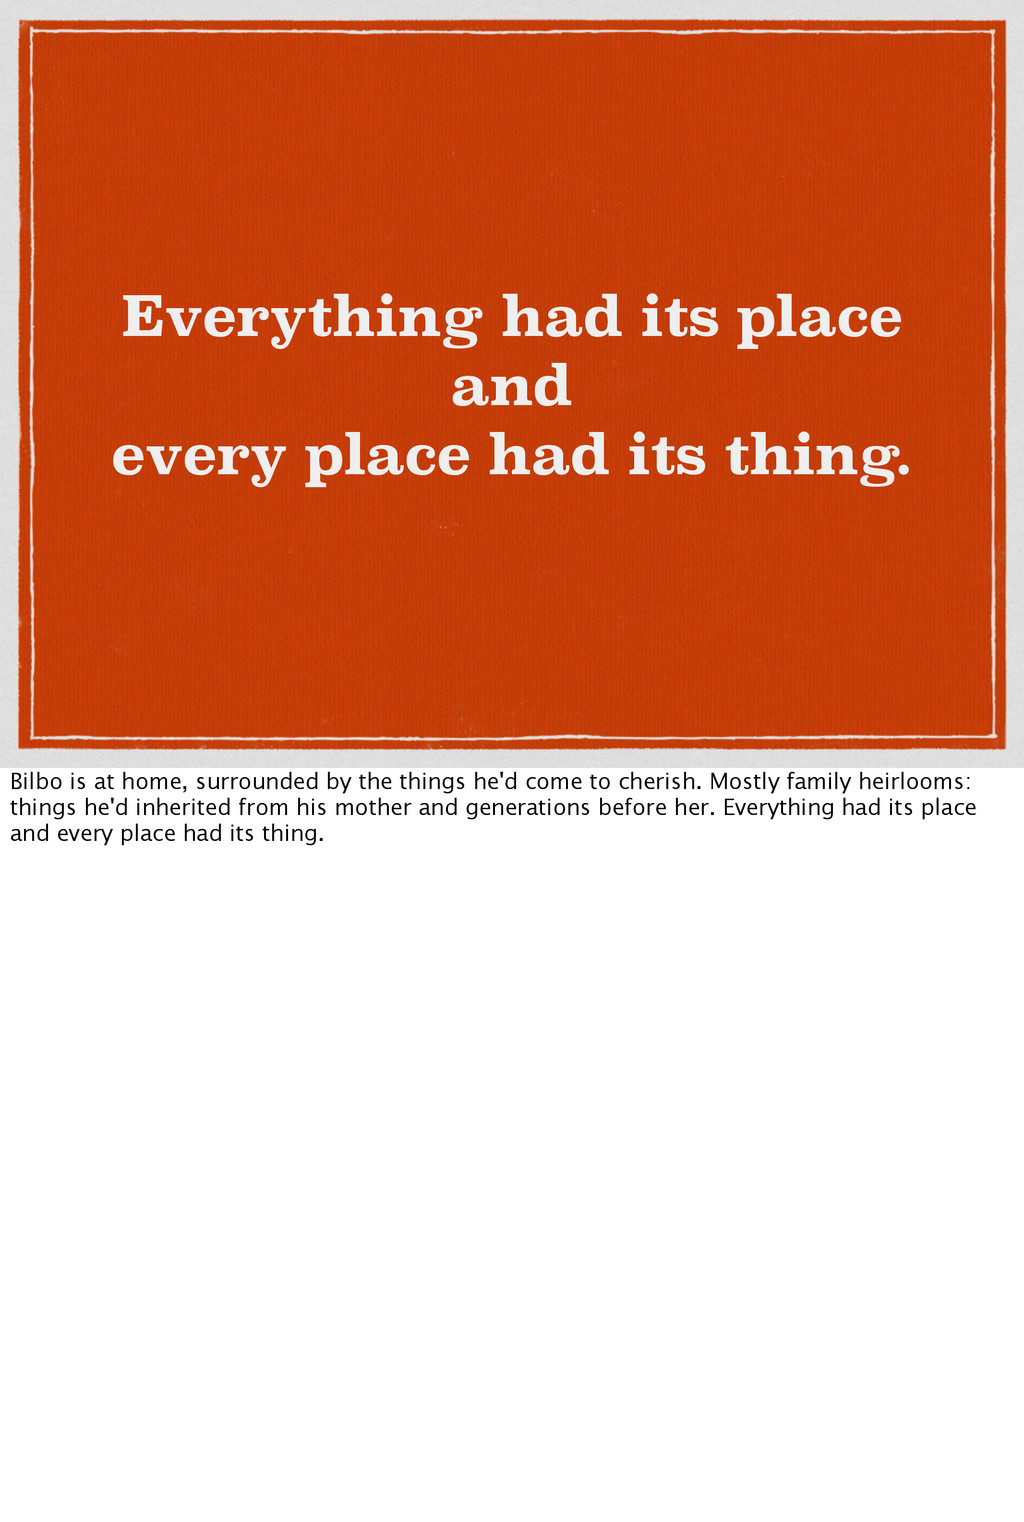 Everything had its place and every place had it...